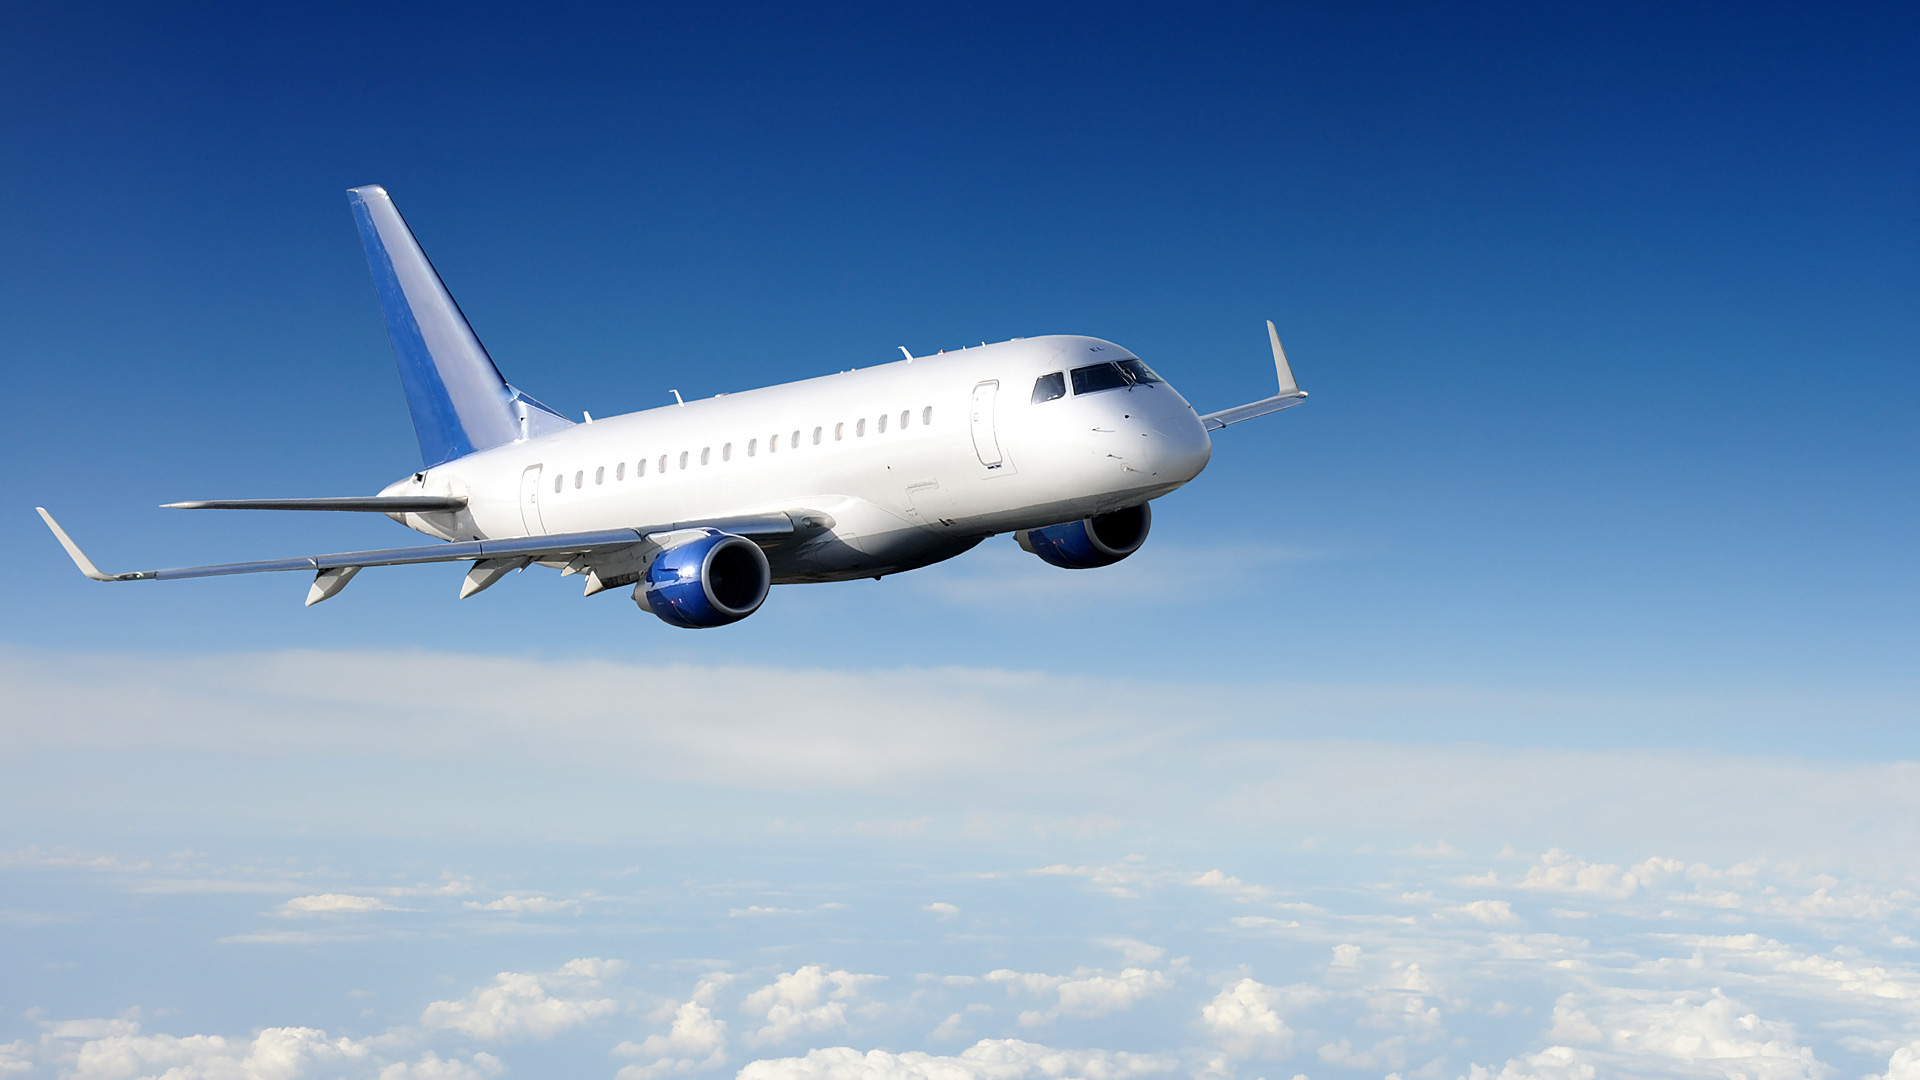 pilgrimages charter aircraft in the sky